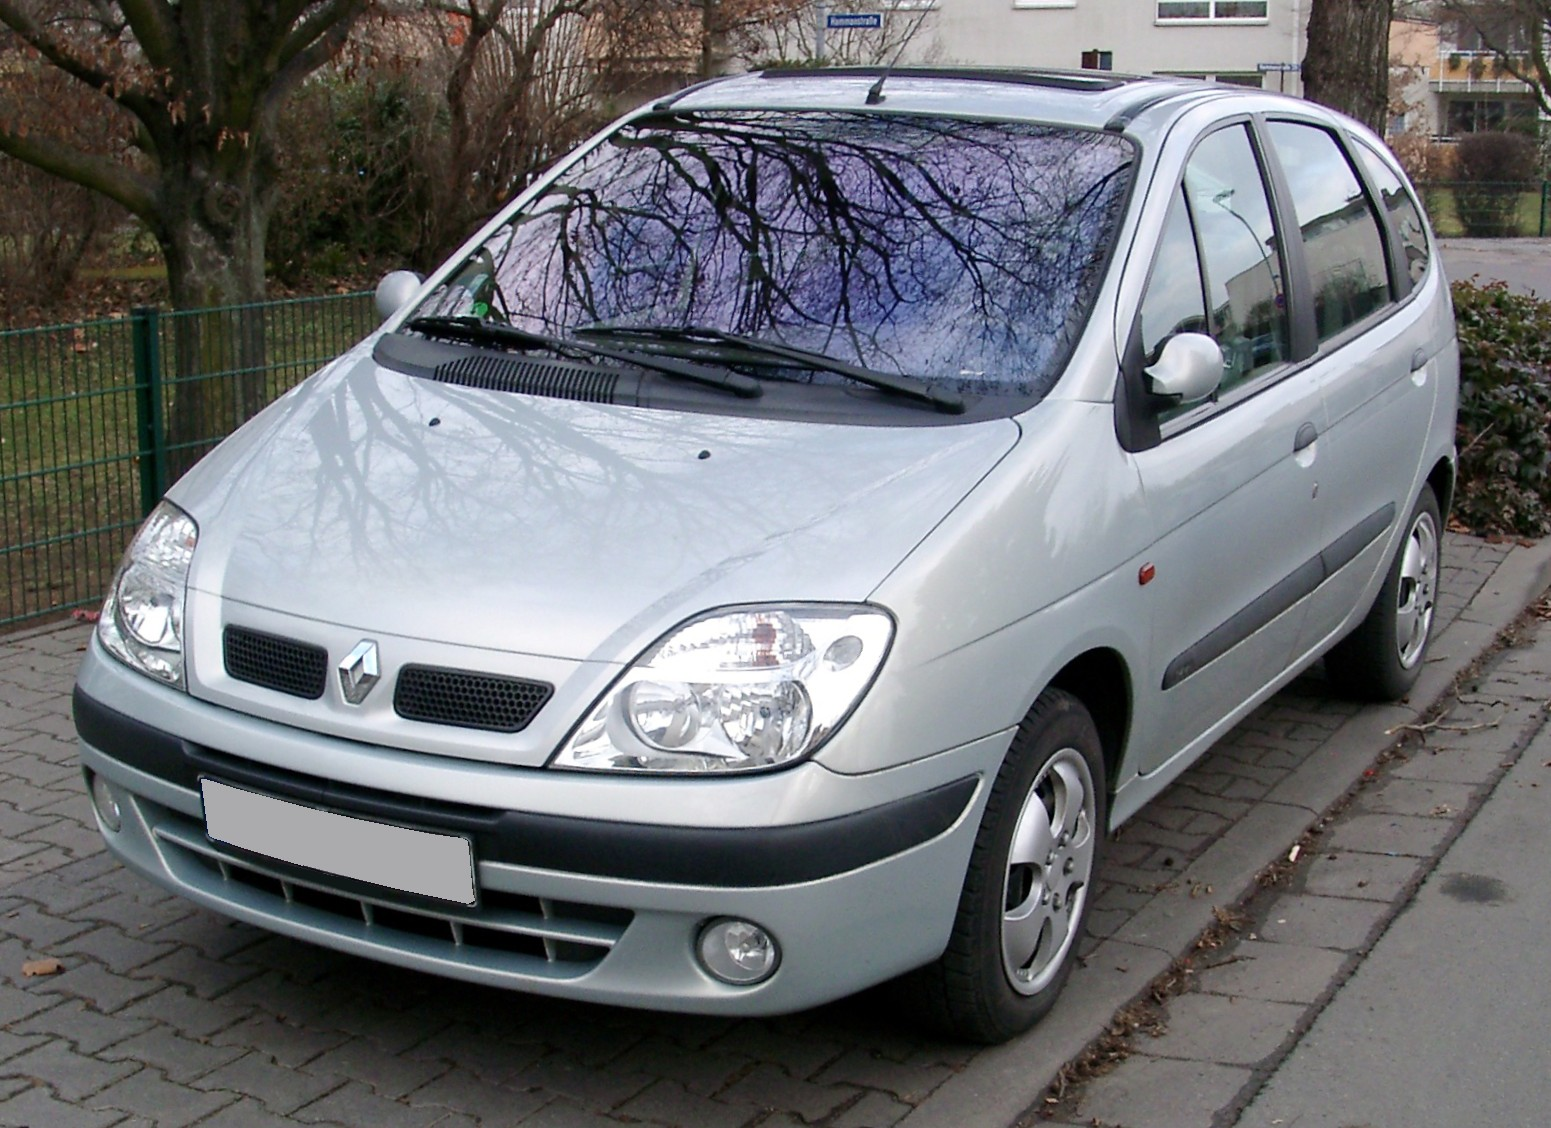 File:Renault Scenic front 20080102.jpg